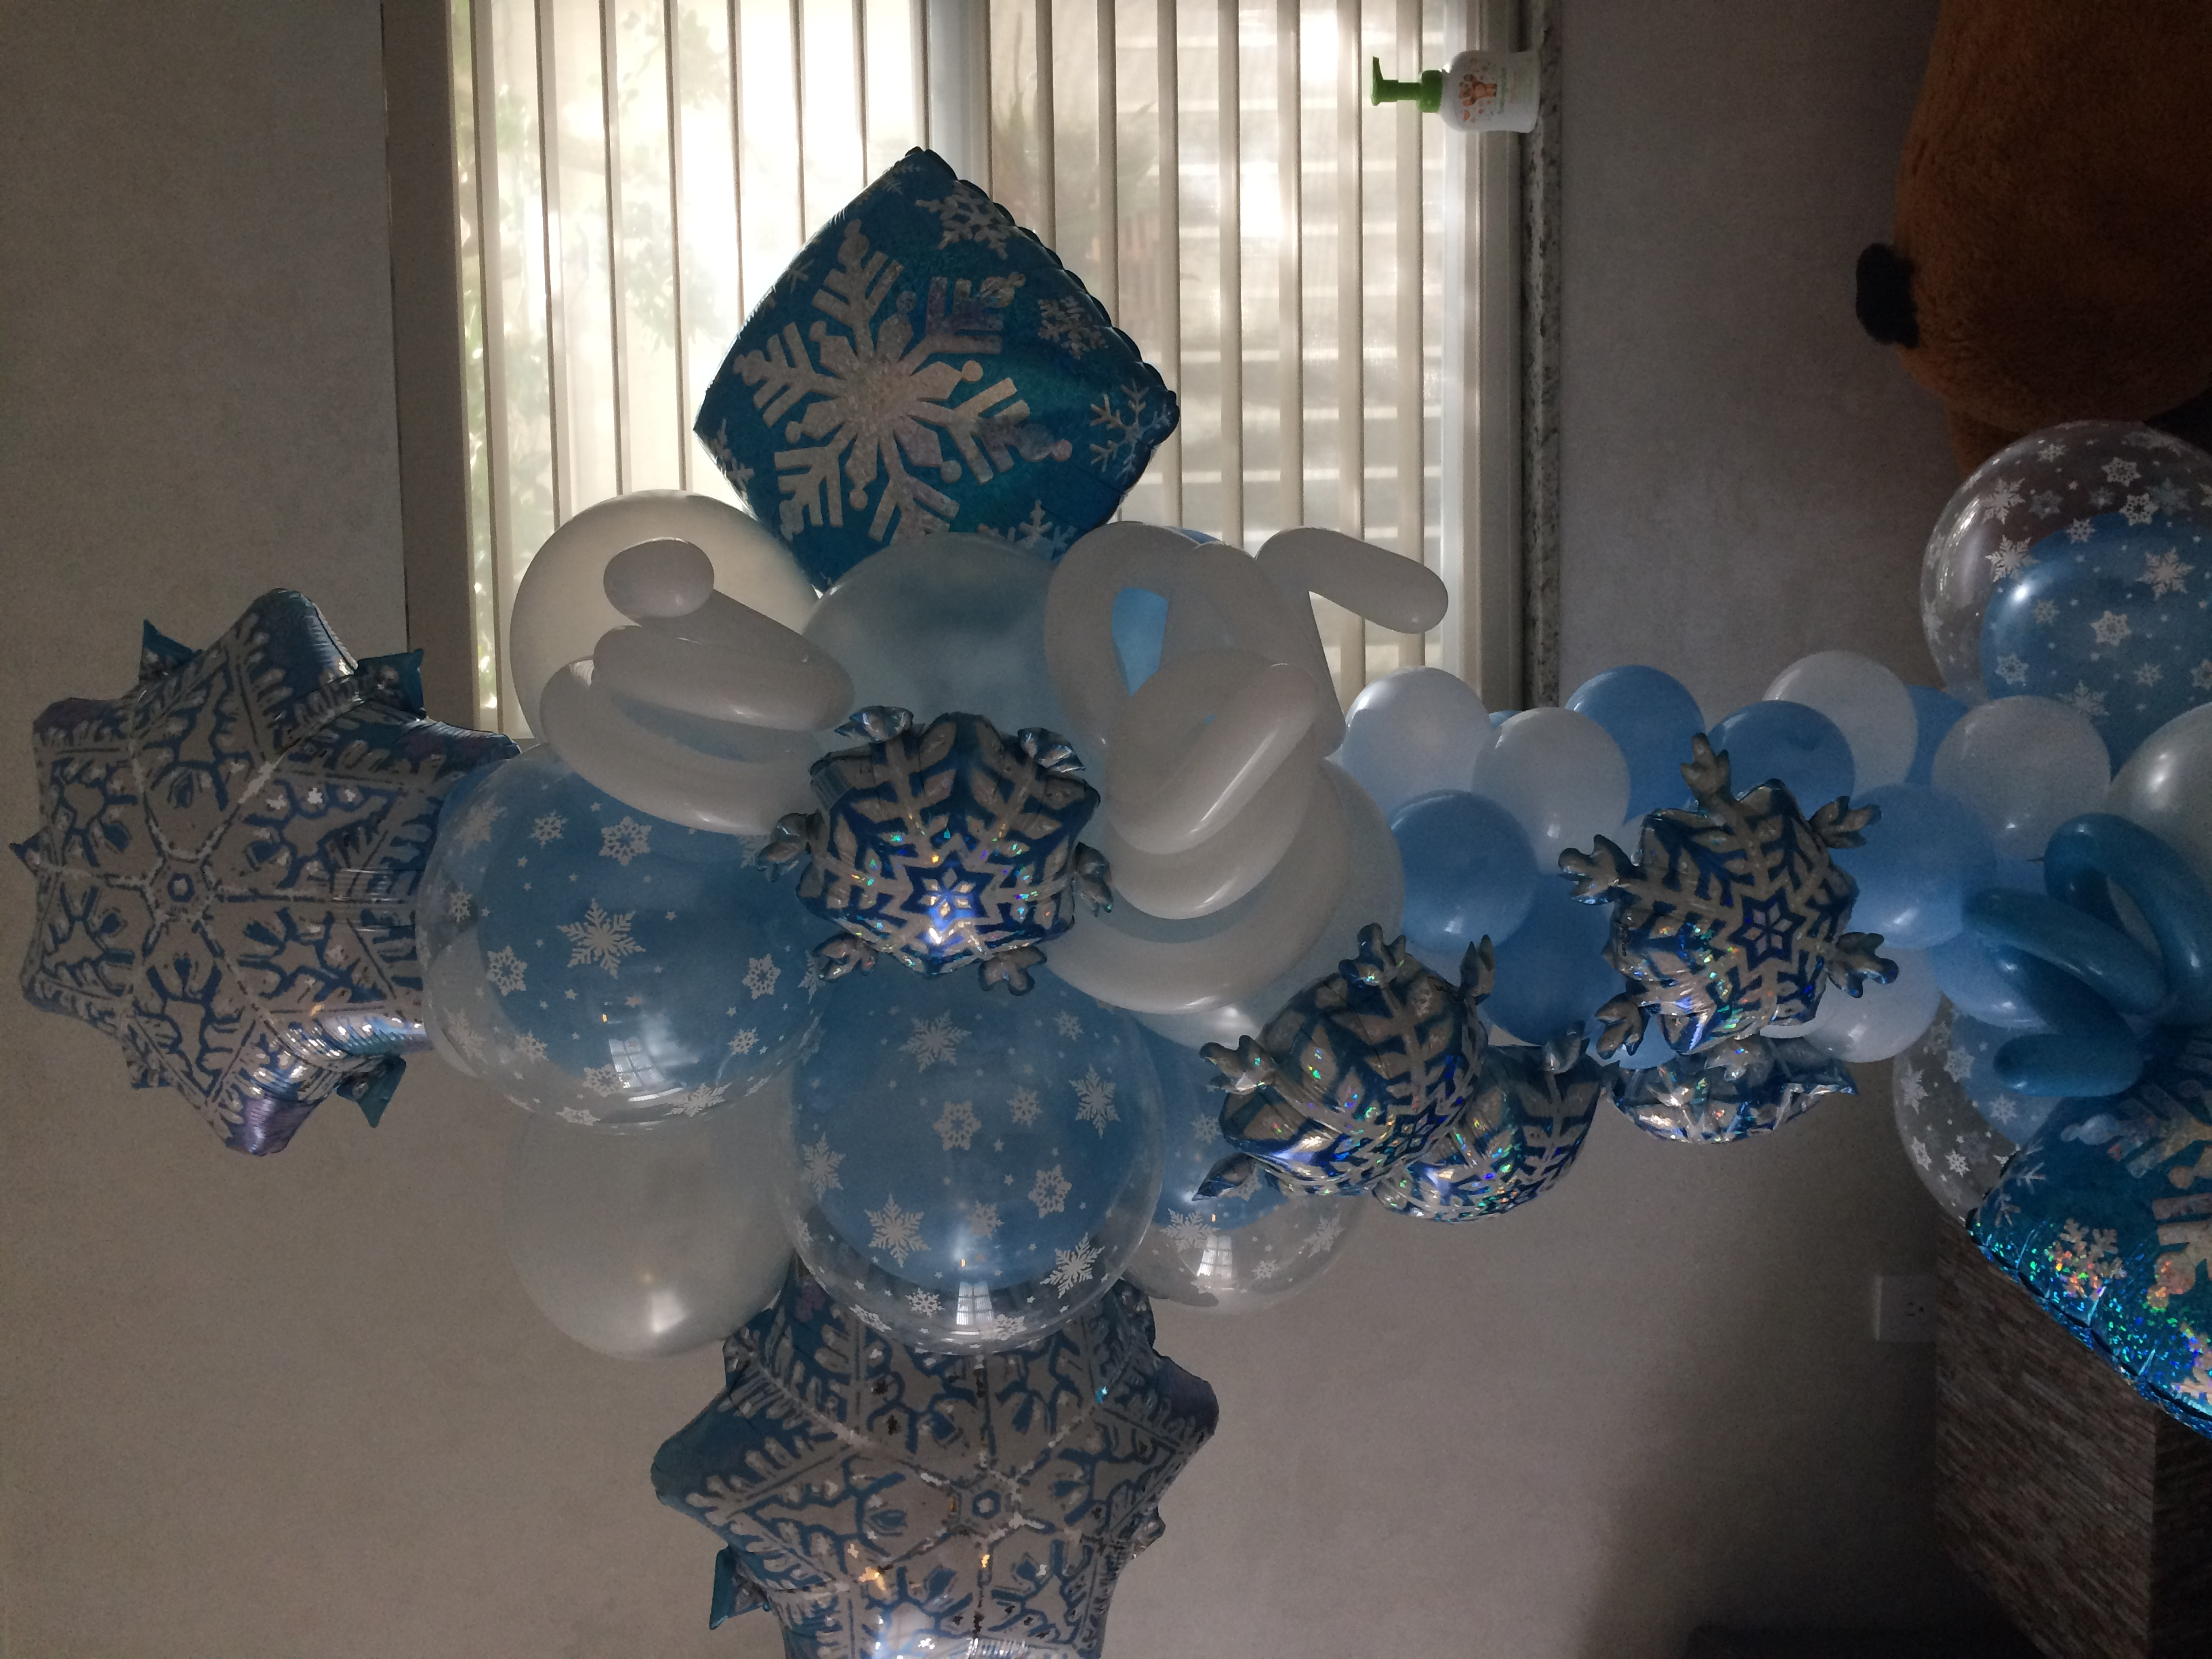 Winter Themed Balloon Column